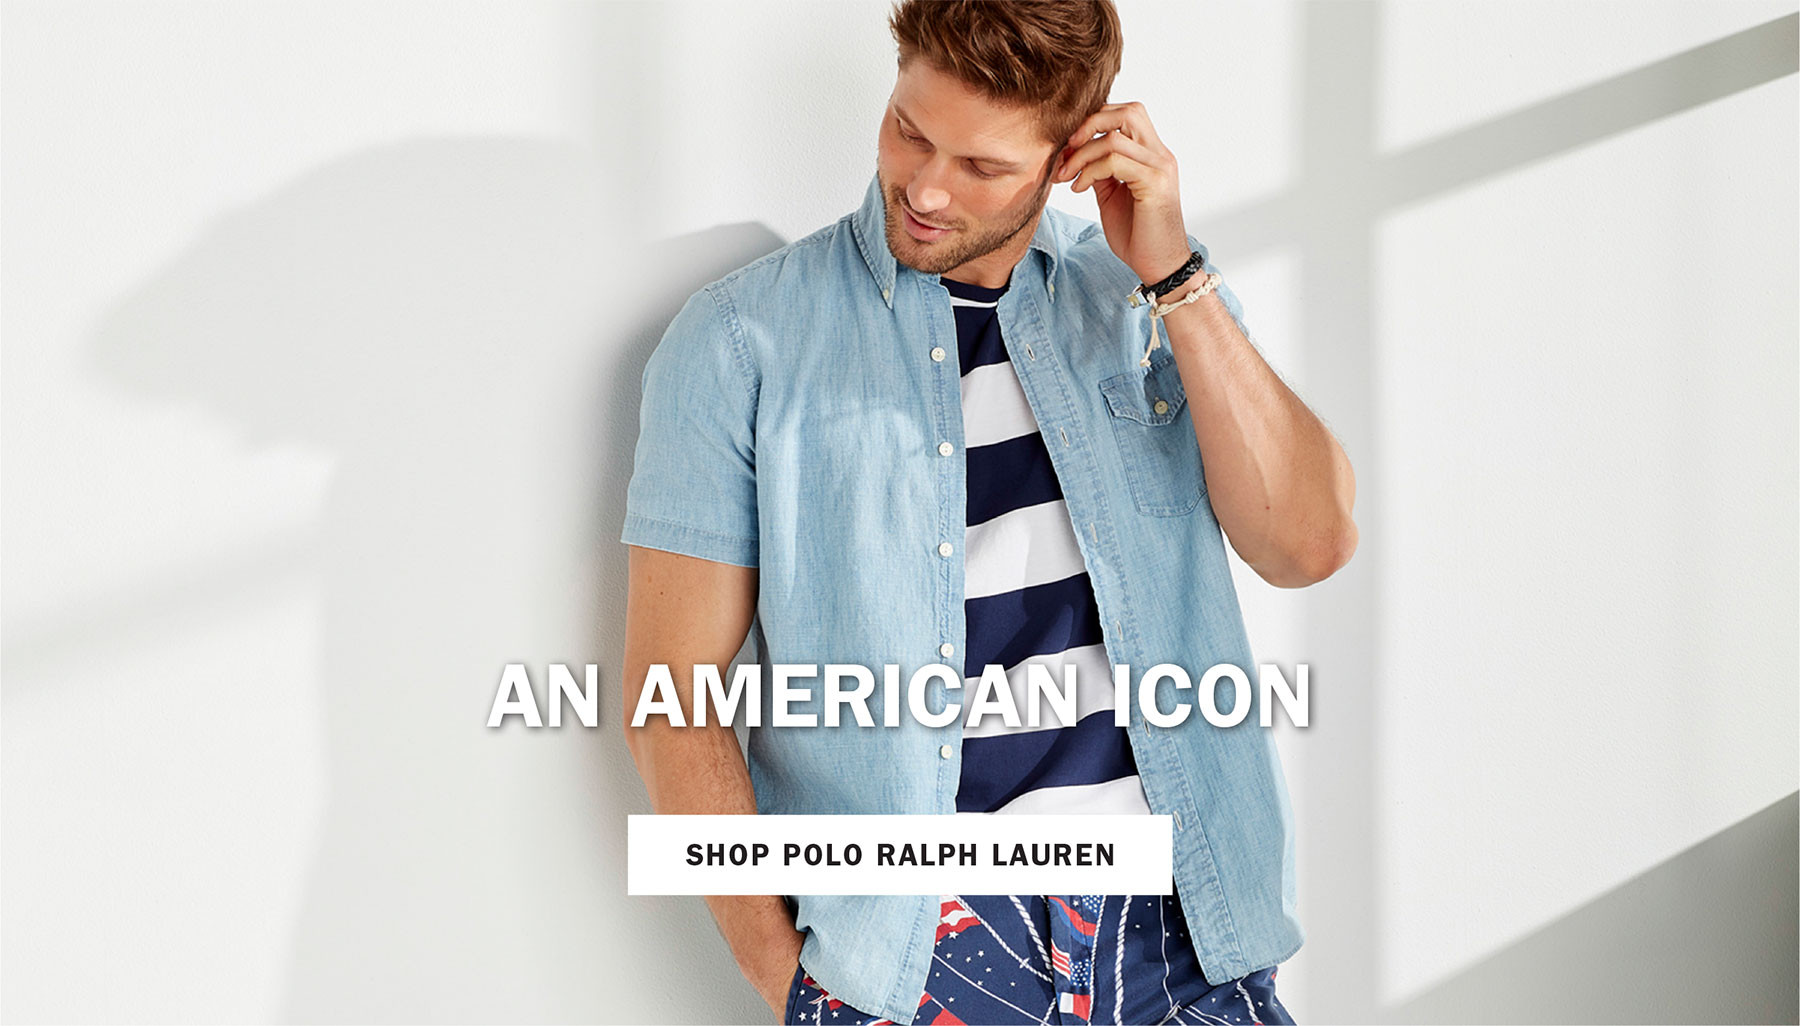 AN AMERICAN ICON | SHOP POLO RALPH LAUREN